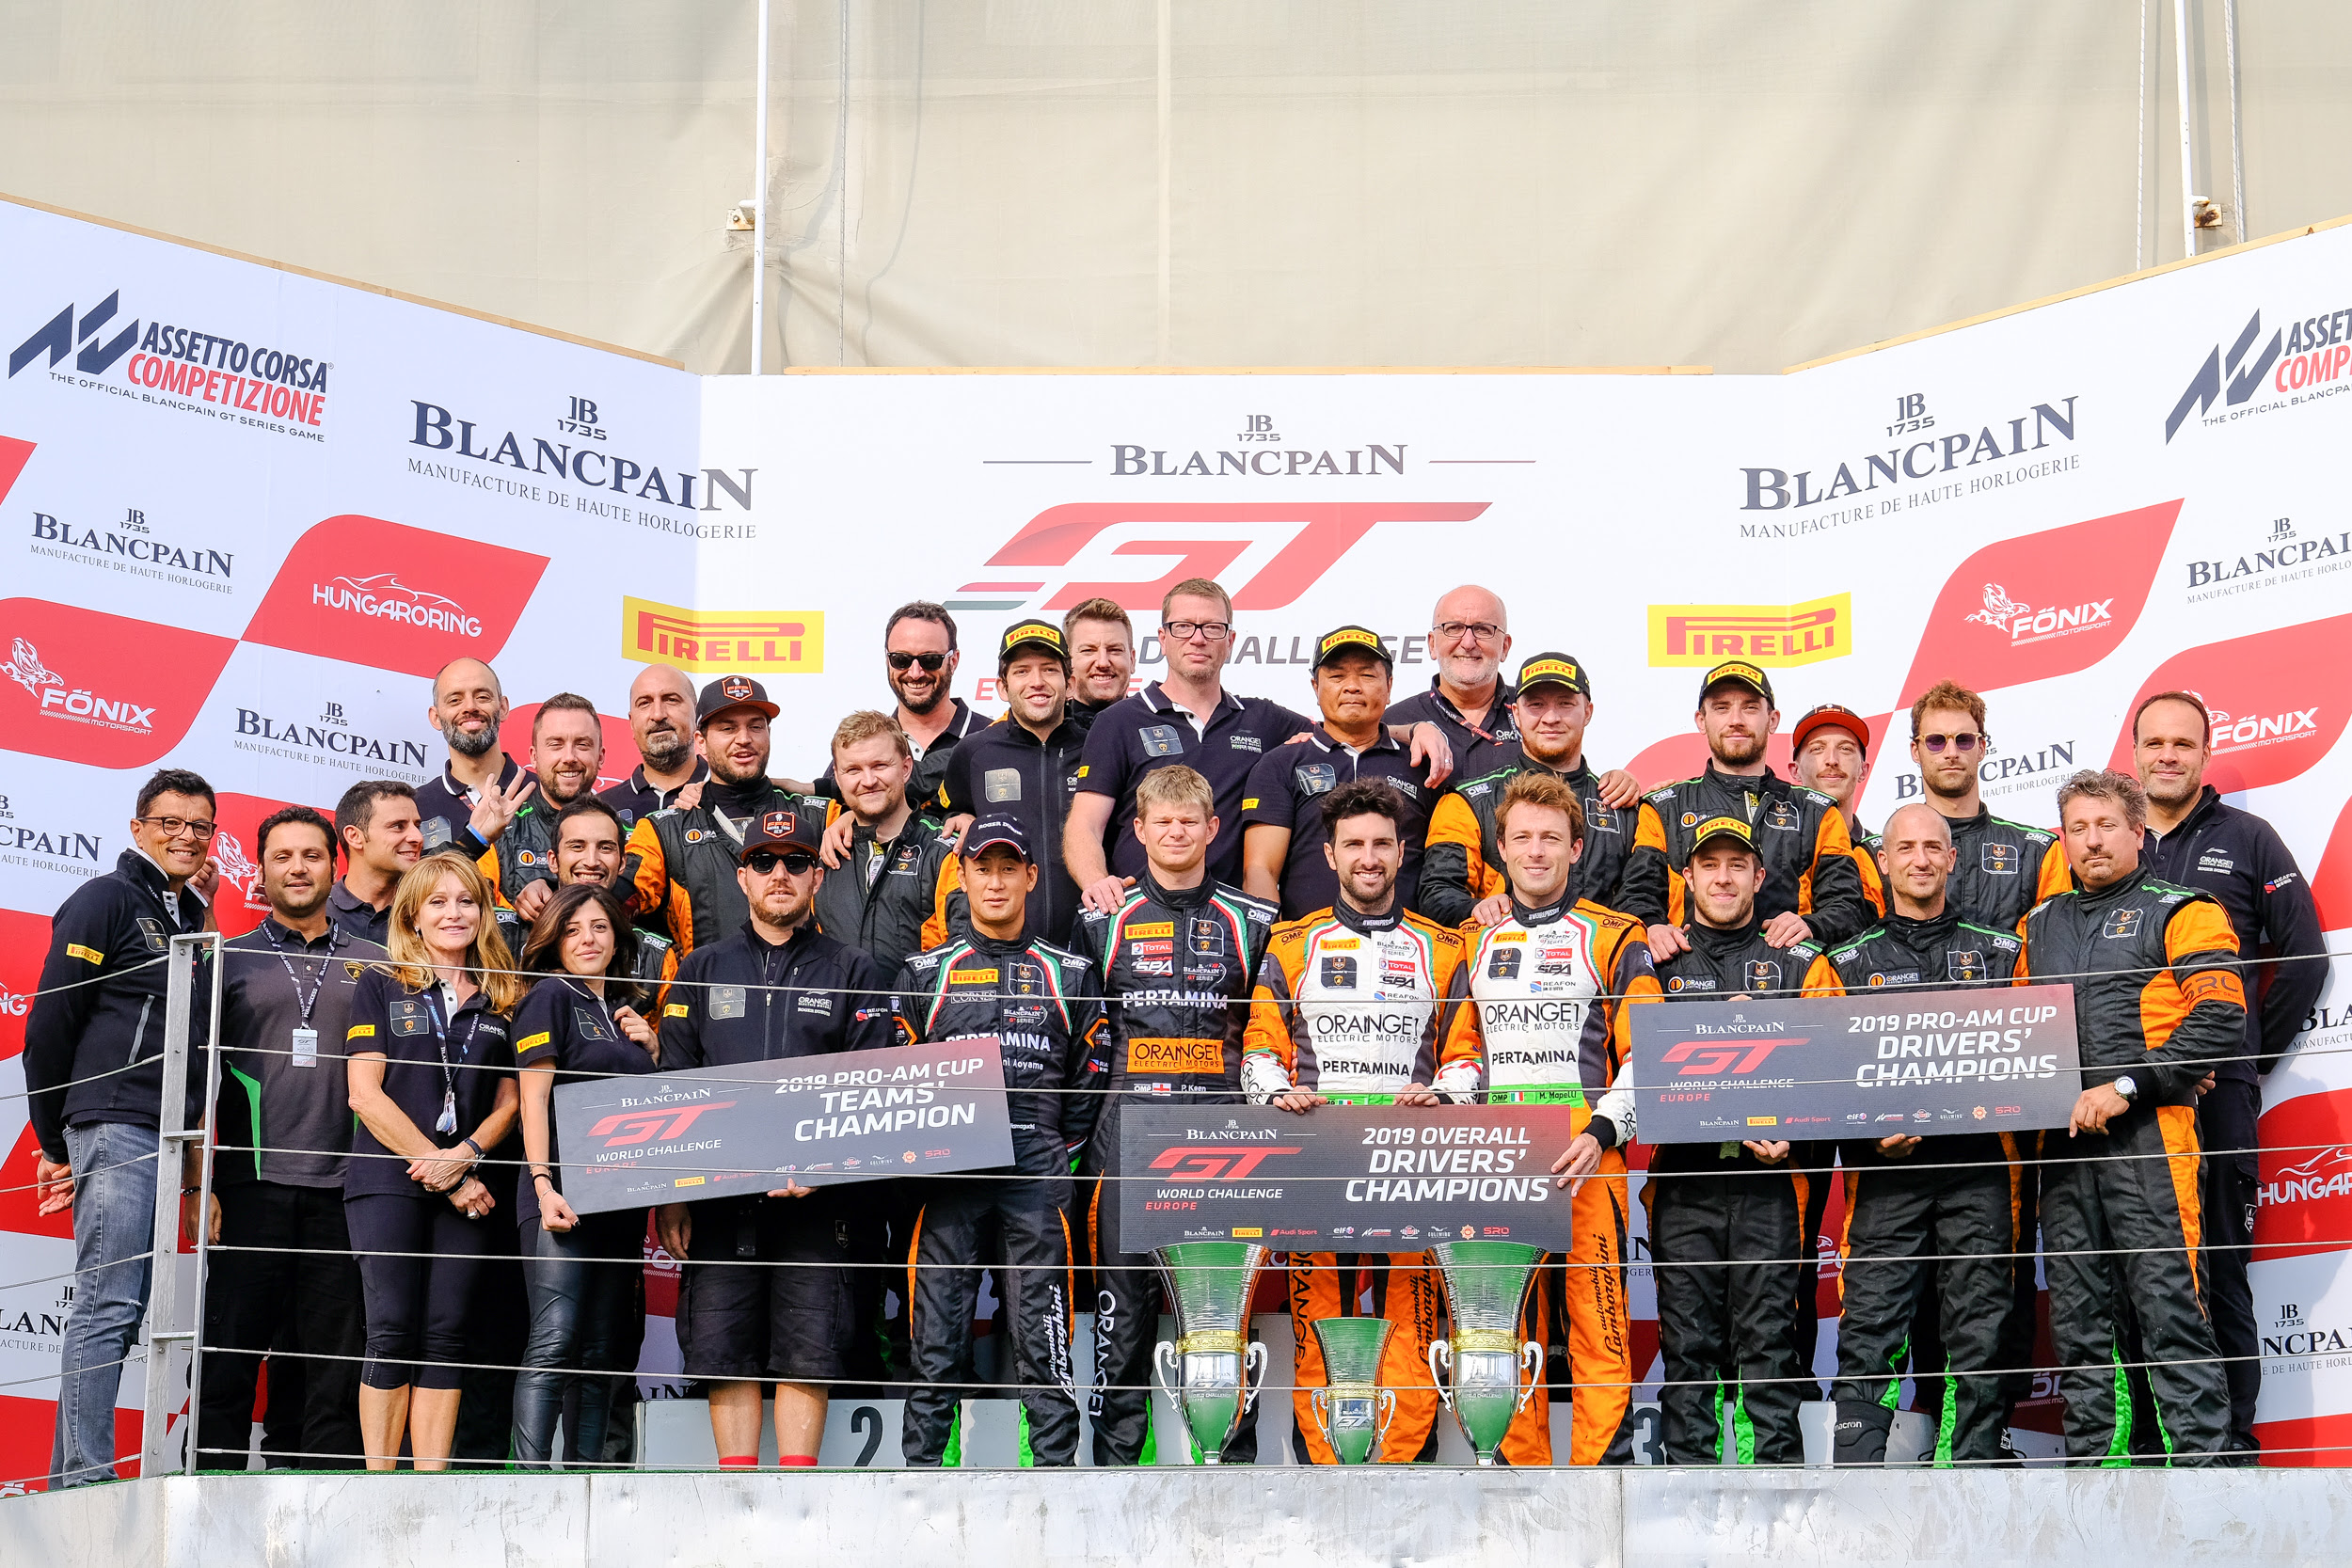 ORANGE1 FFF Racing Team by ACM sets a poker of titles in the Blancpain GT World Challenge Europe